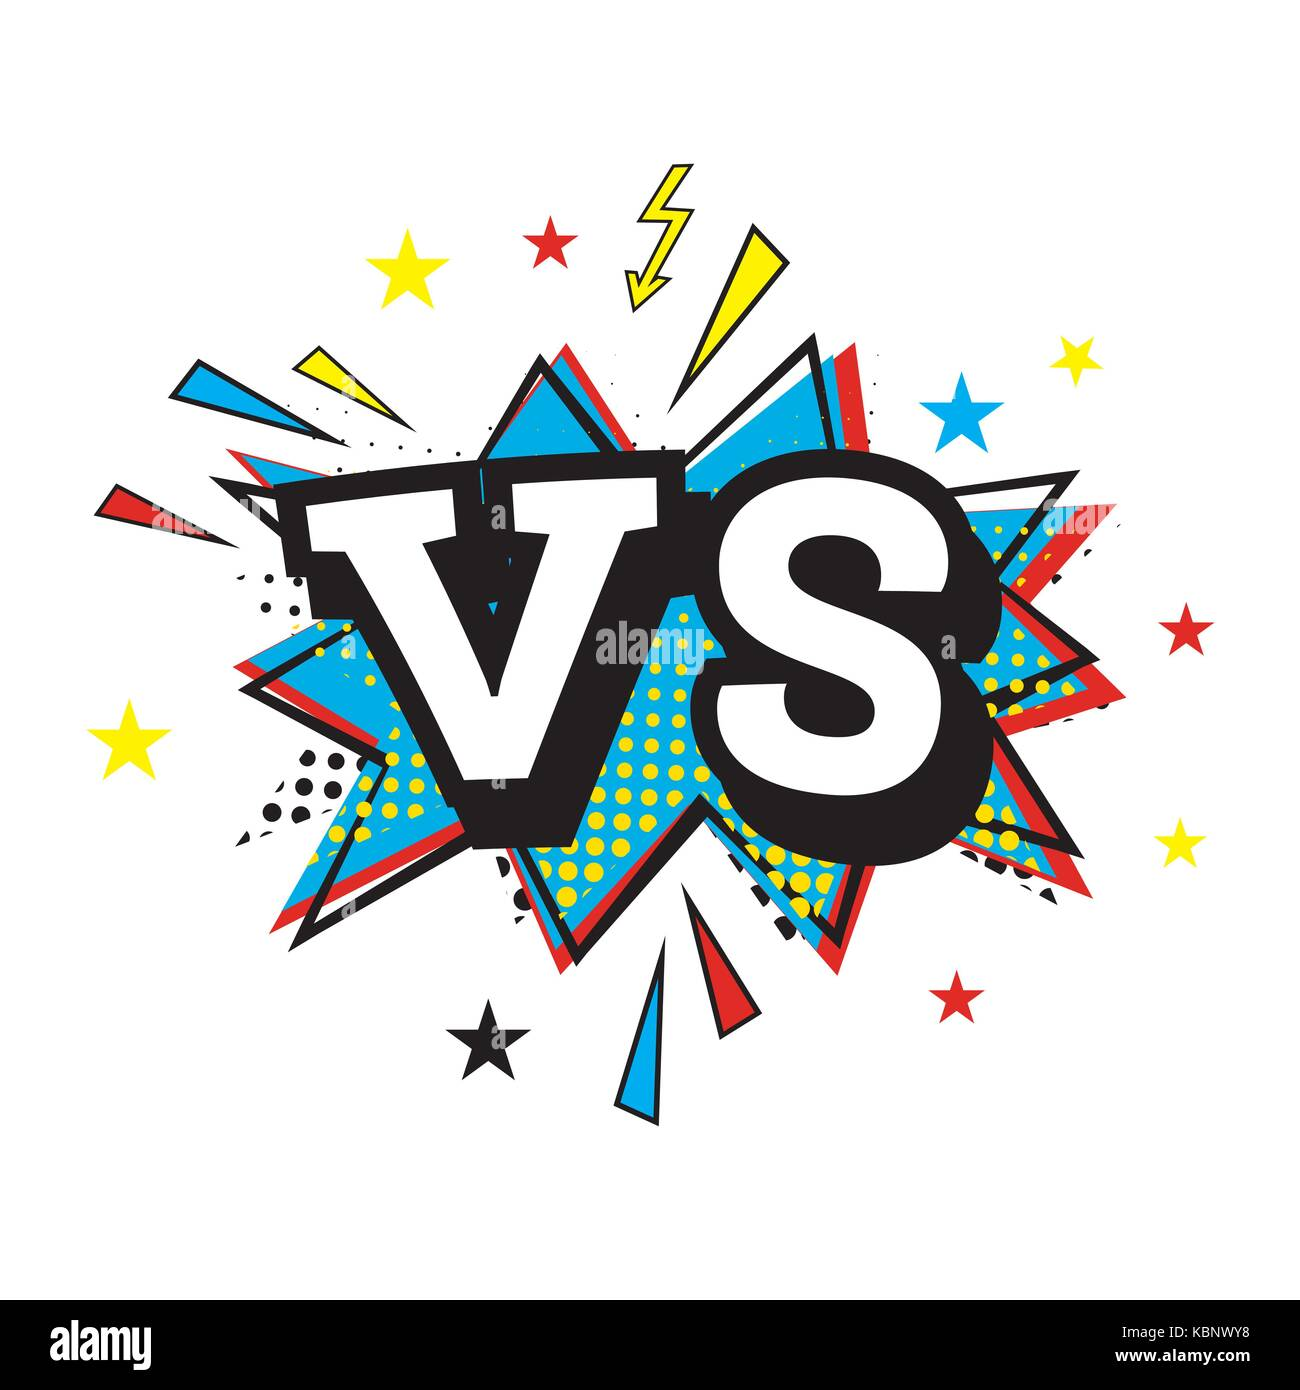 Versus Letters or VS Logo. Comic Text in Pop Art Style. Vector Illustration - Stock Vector